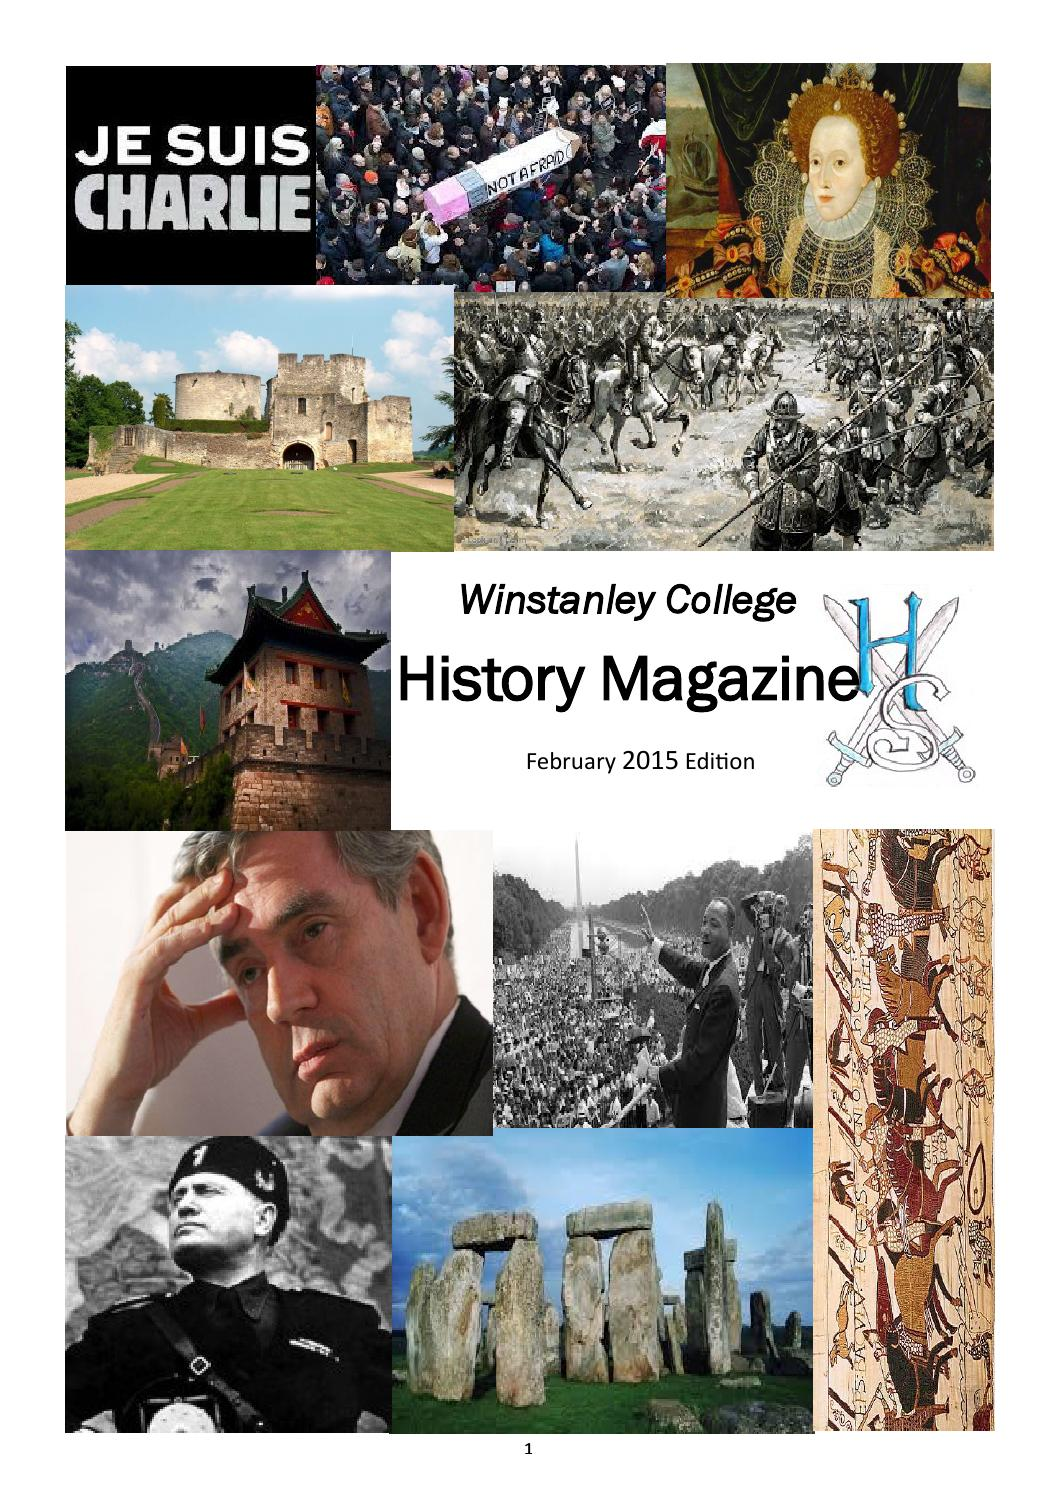 a2 history coursework civil rights Subject: history (unit 1) year: 12 qualification: as level  sanders, vivienne, civil rights in the usa, 1945-68, (access to history), 2008.